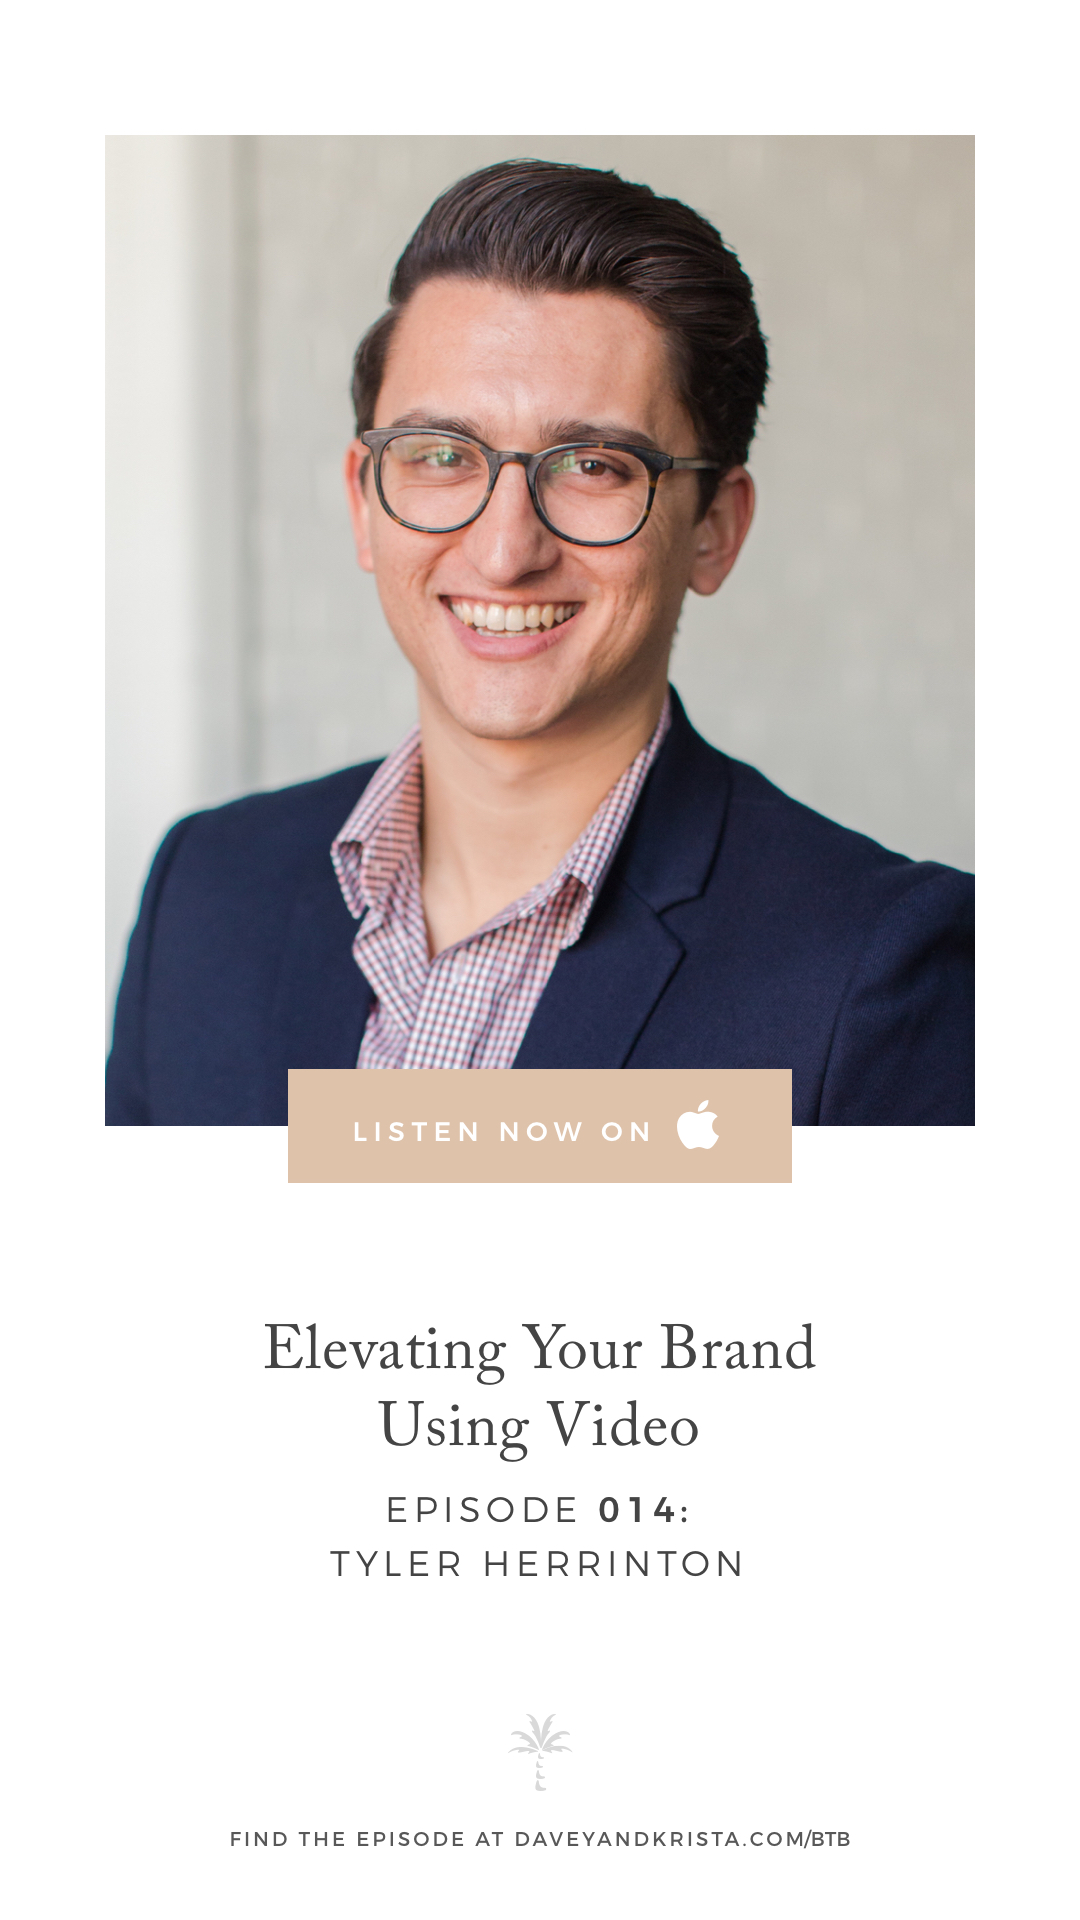 Elevating Your Brand Using Video